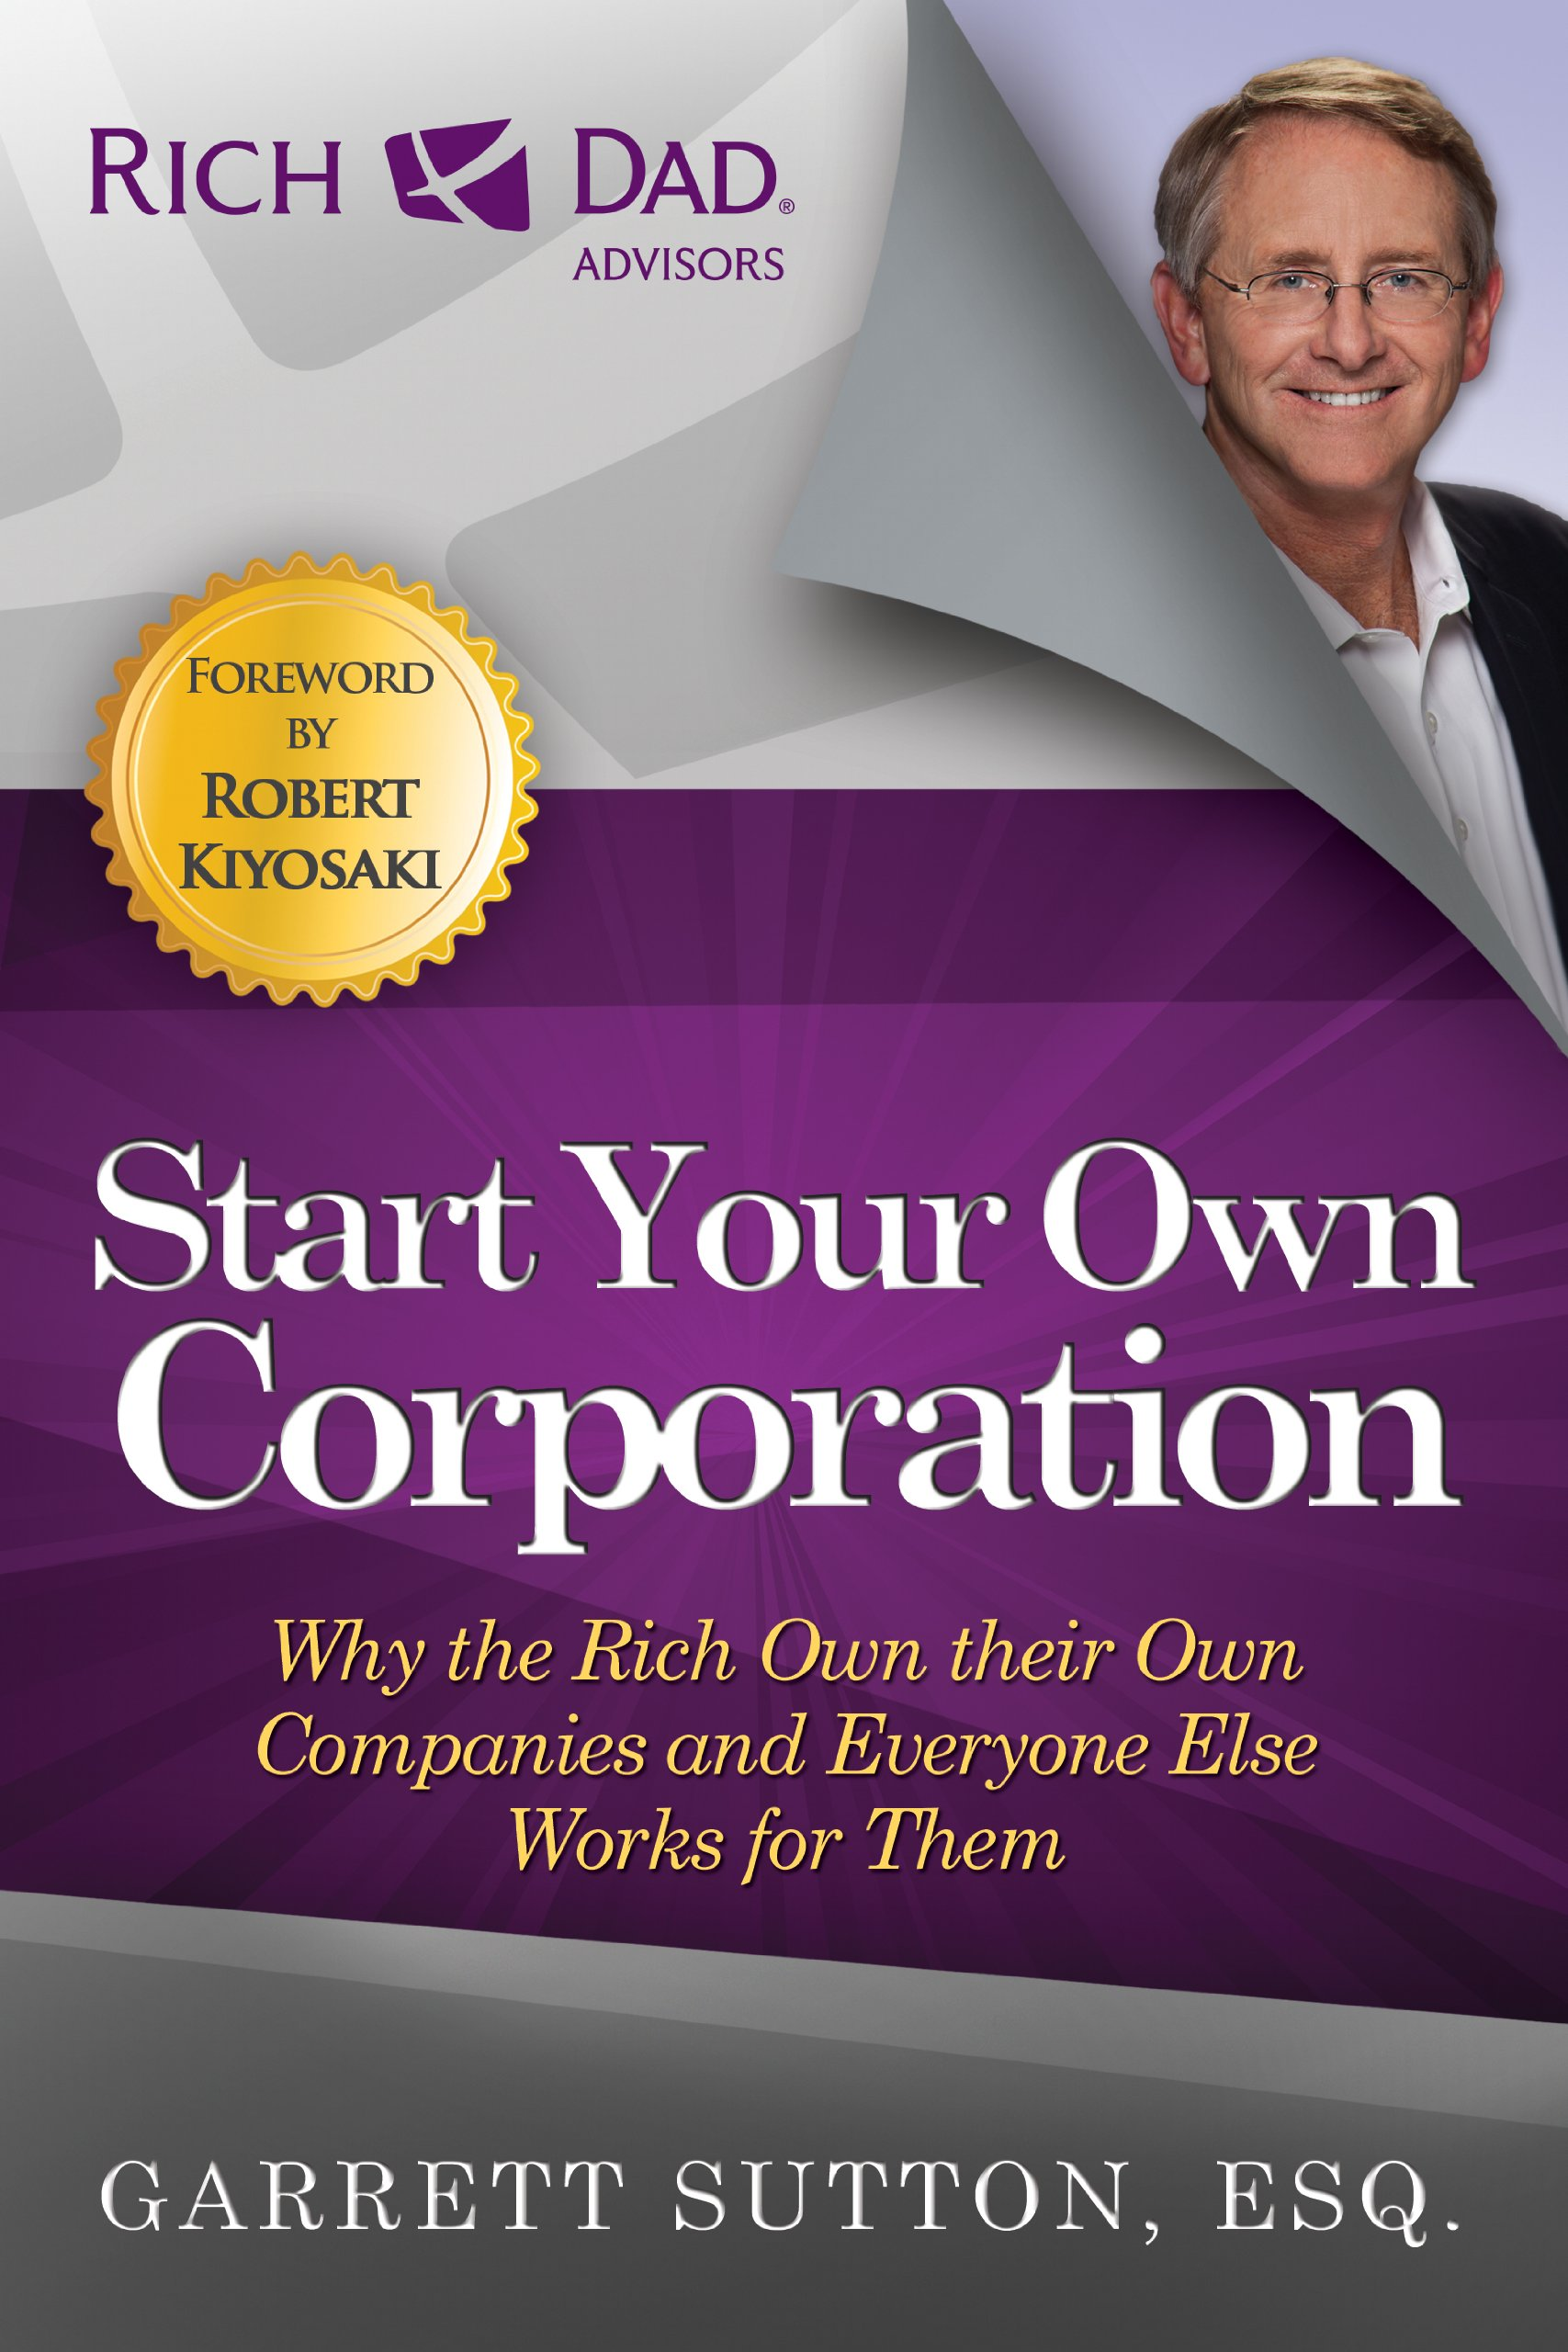 How to be your own company